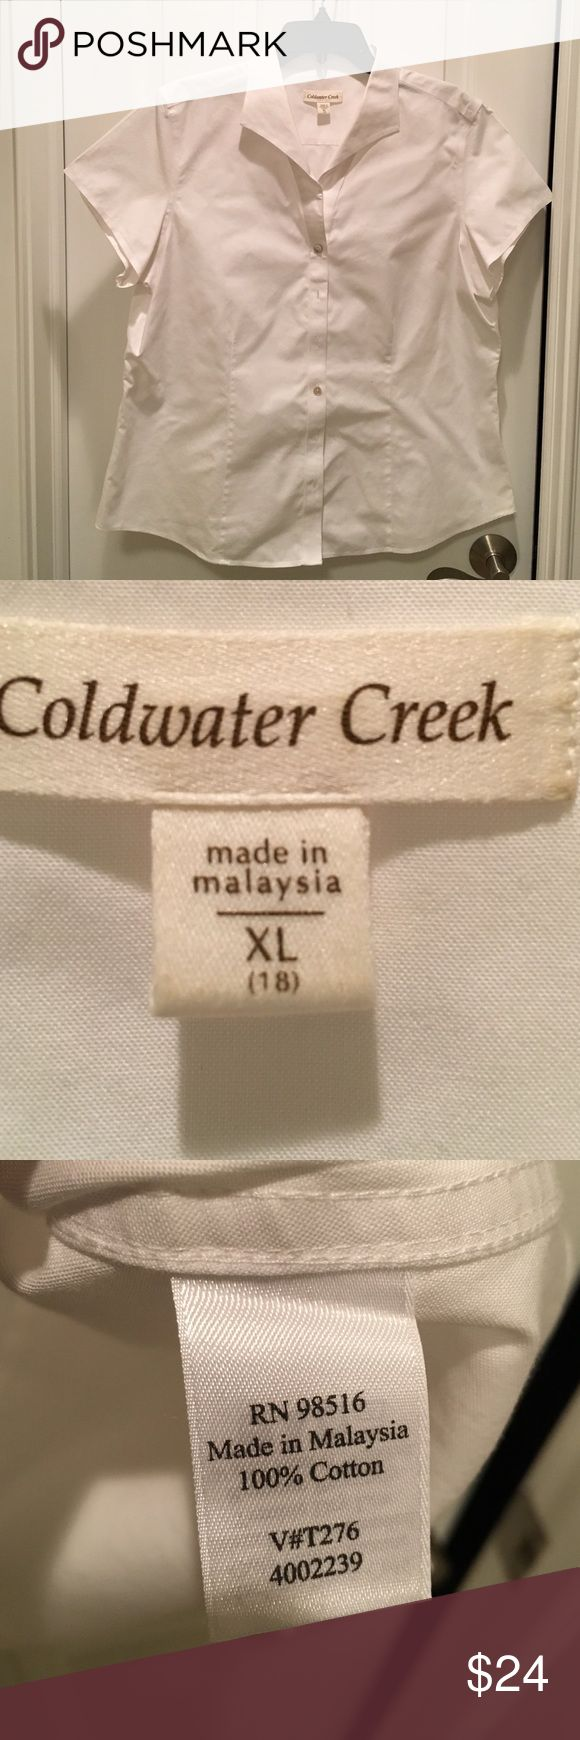 Coldwater Creek White 100% Cotton Blouse White 100% cotton button front short-sleeved blouse from Coldwater Creek.   Size XL or 18. Coldwater Creek Tops Blouses